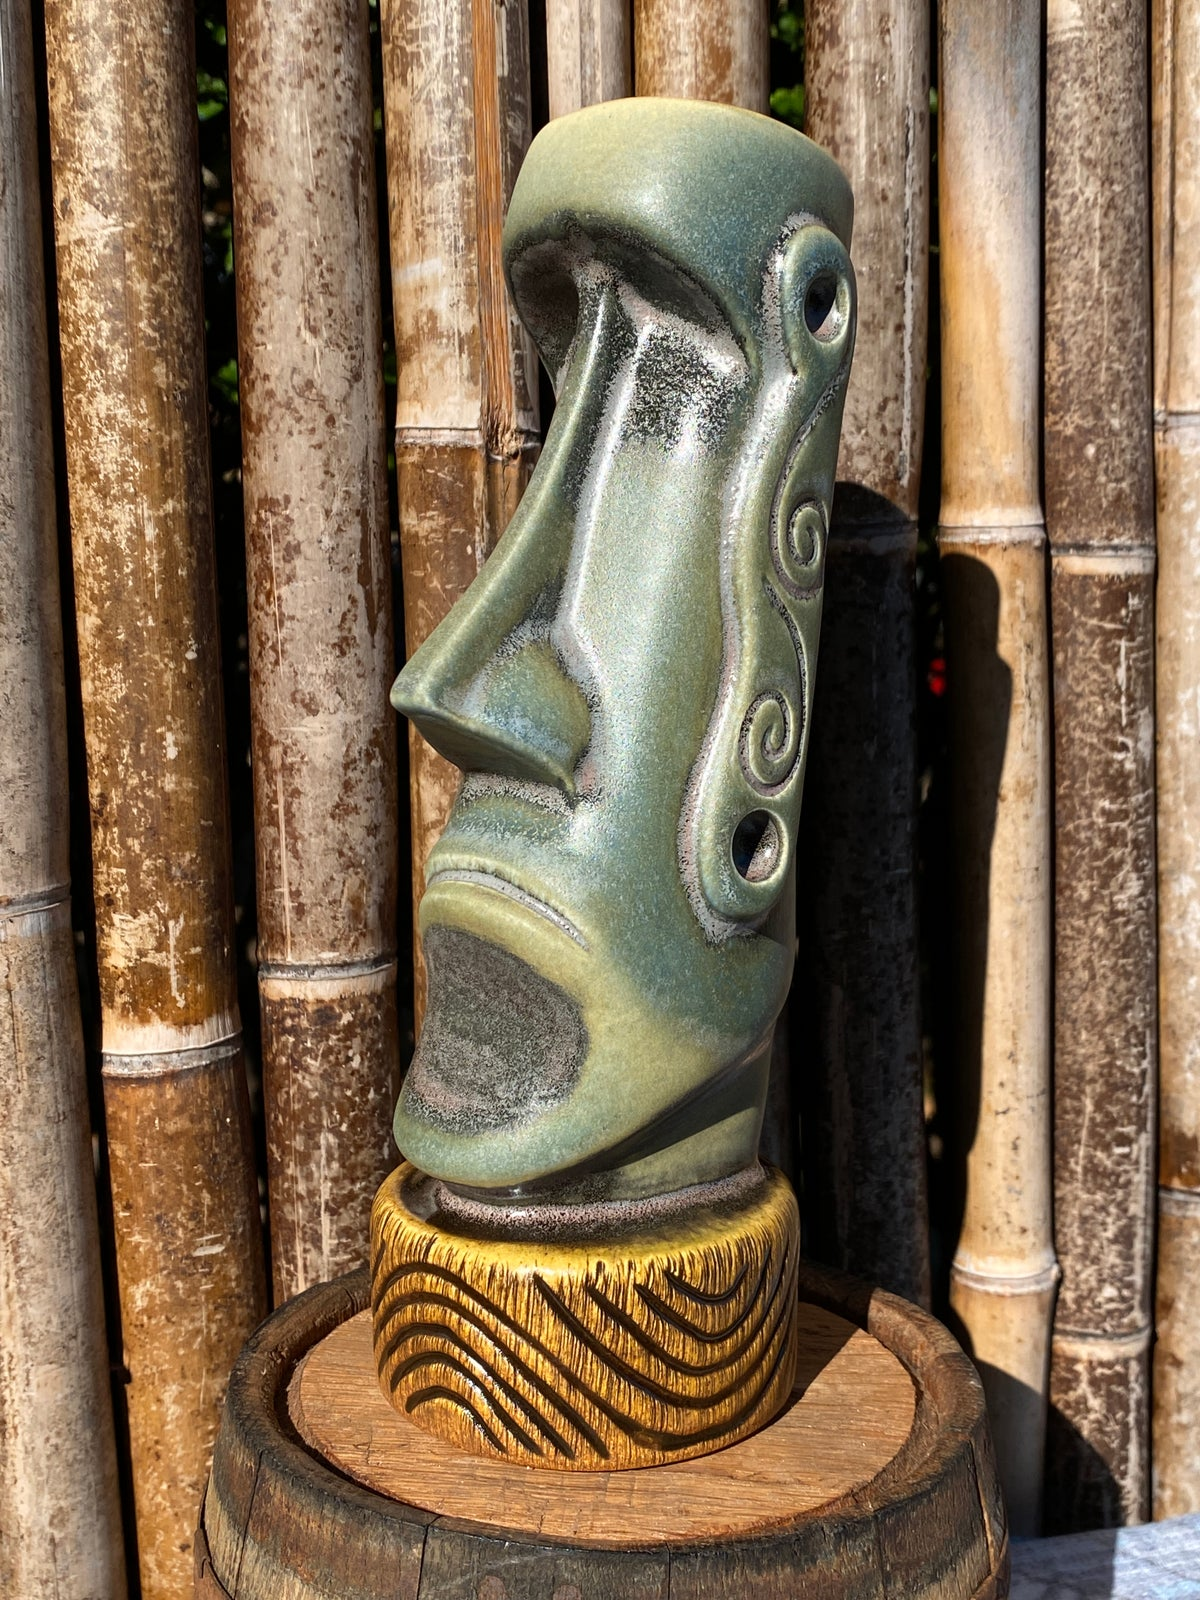 Image of Morongo Tiki Mugs - Available at Tiki Oasis Arizona